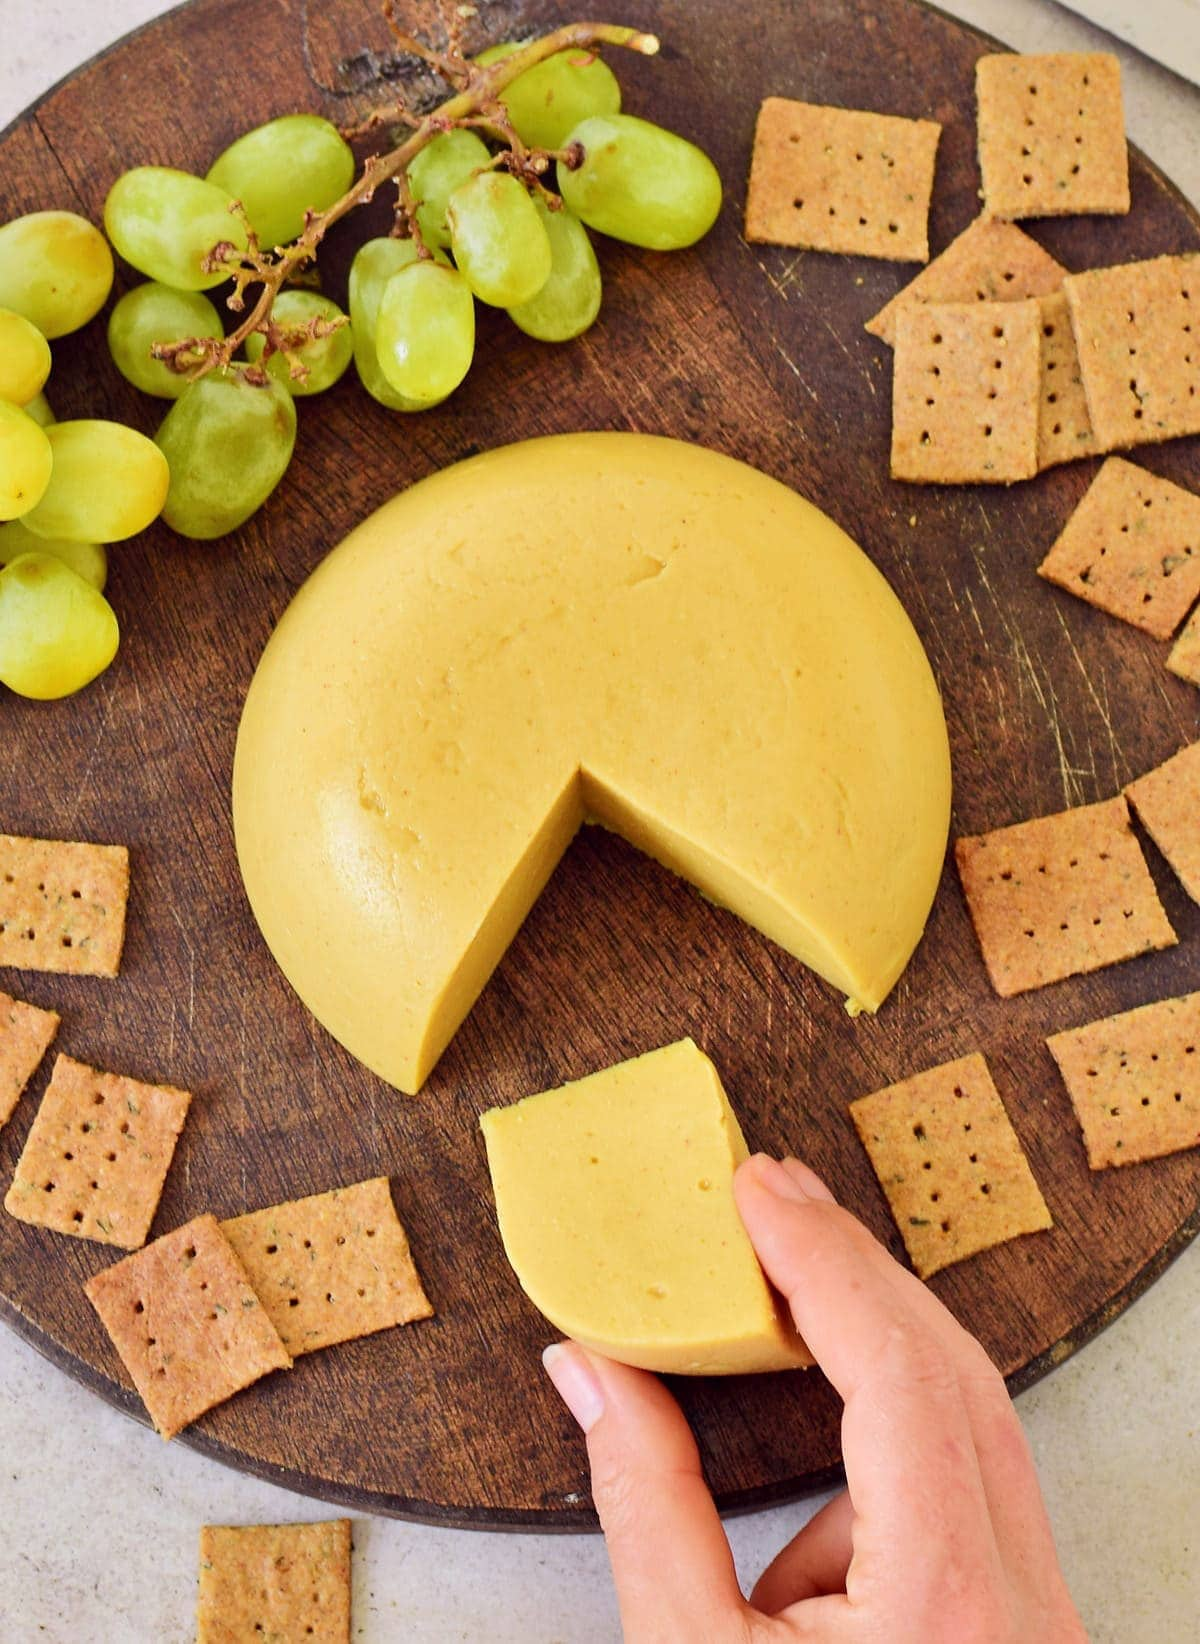 hand grabbing a piece of vegan cheese